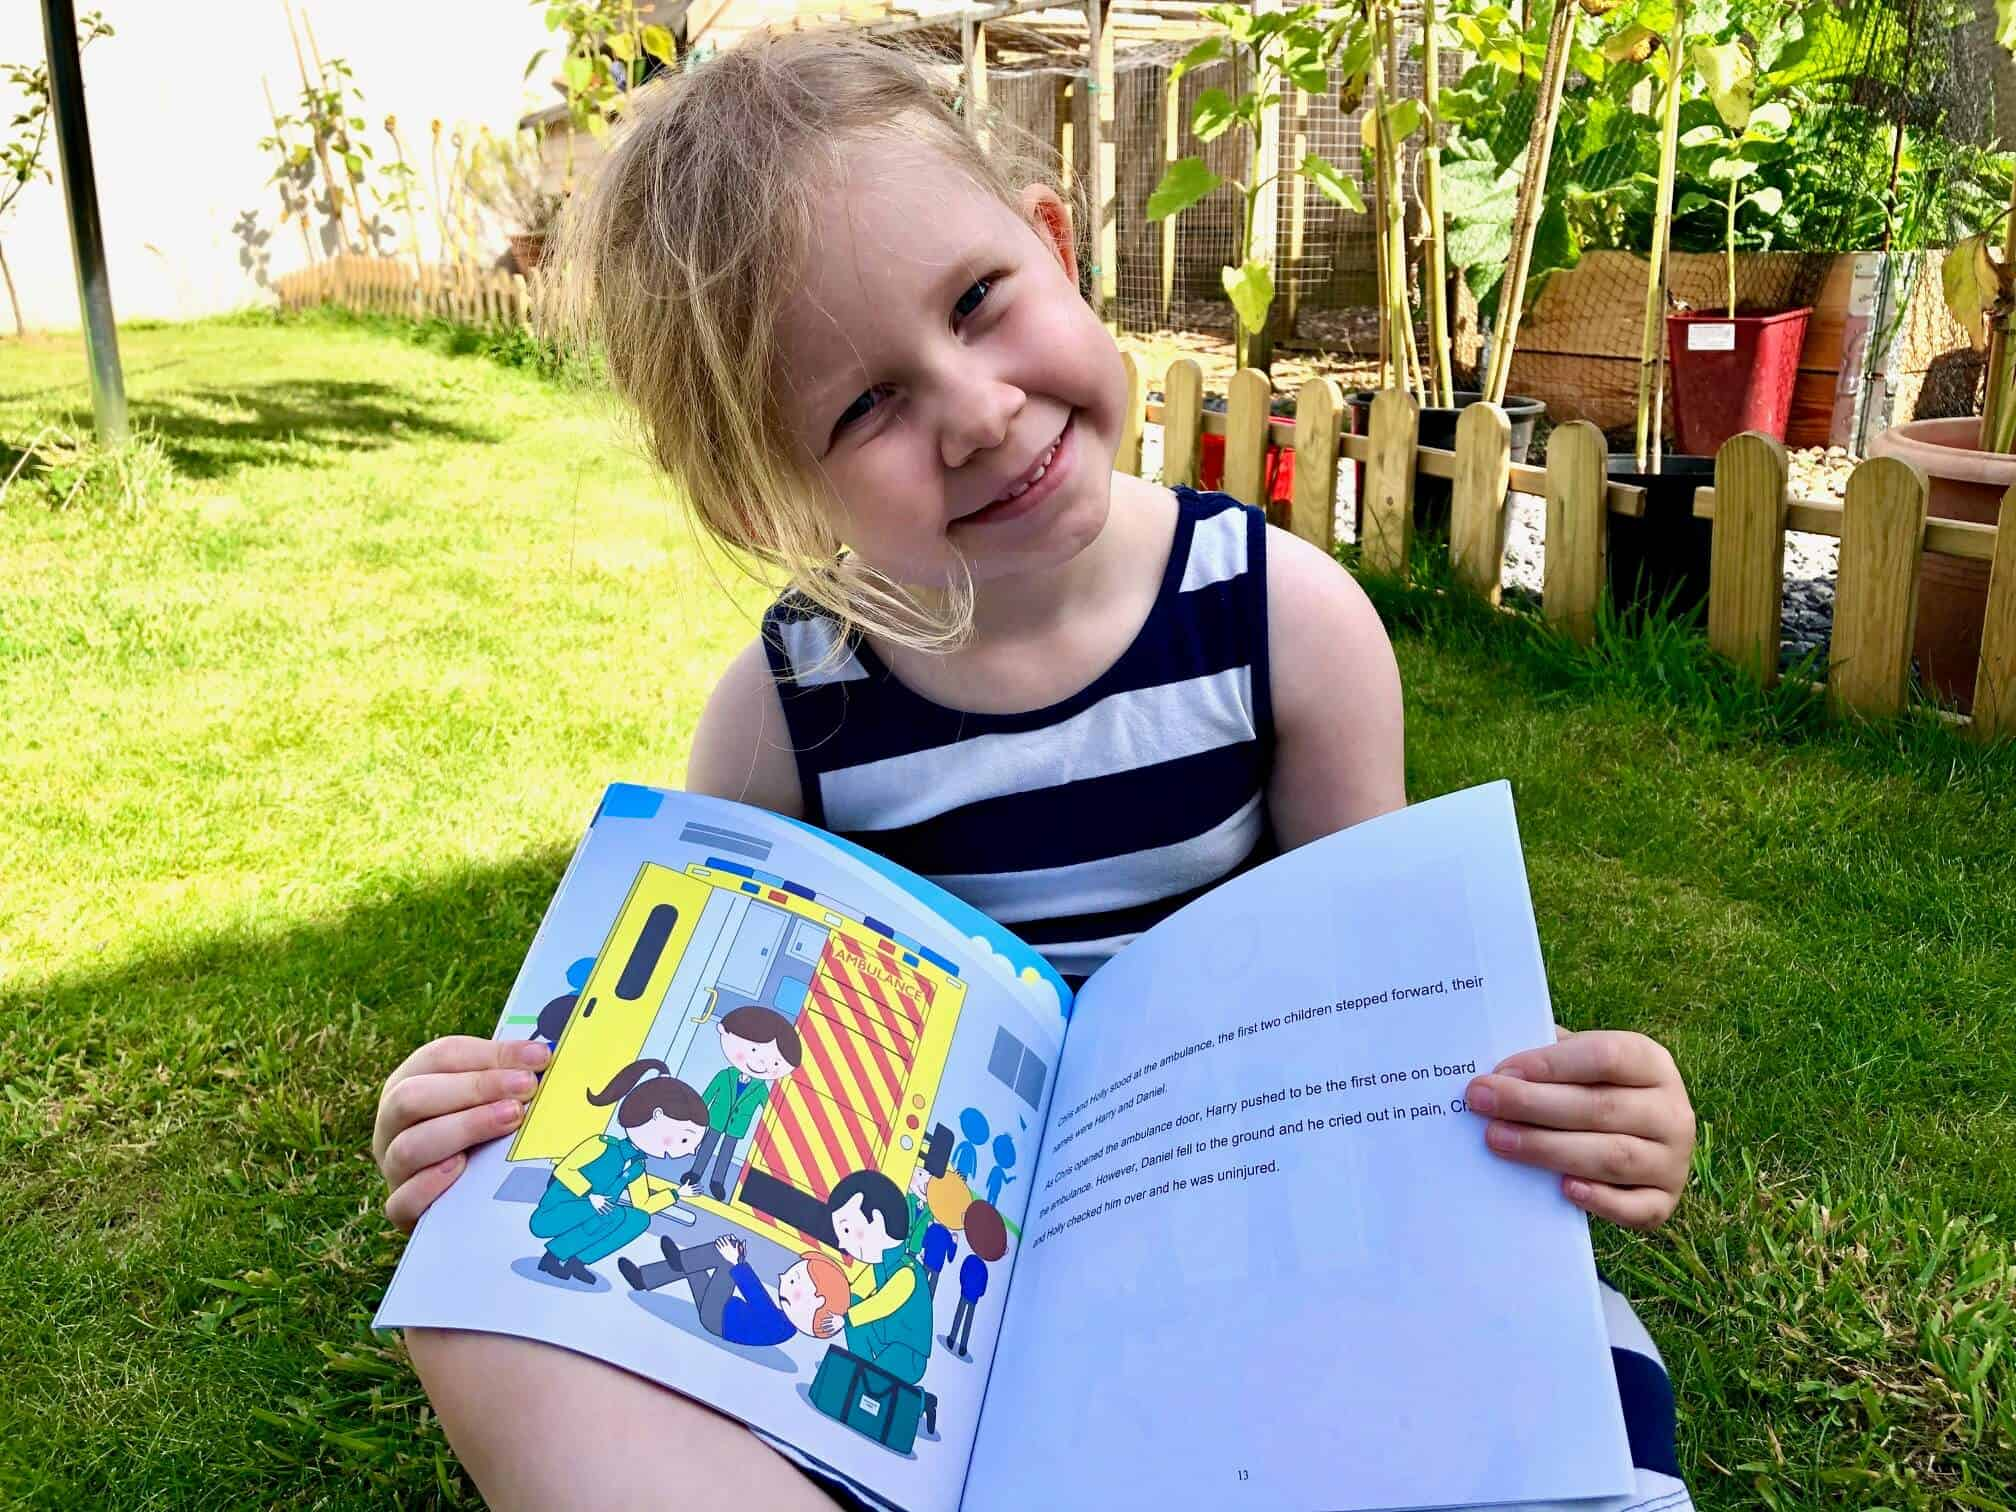 L reading Paramedic Chris A Sorry Bully by Tim Parsons - Review